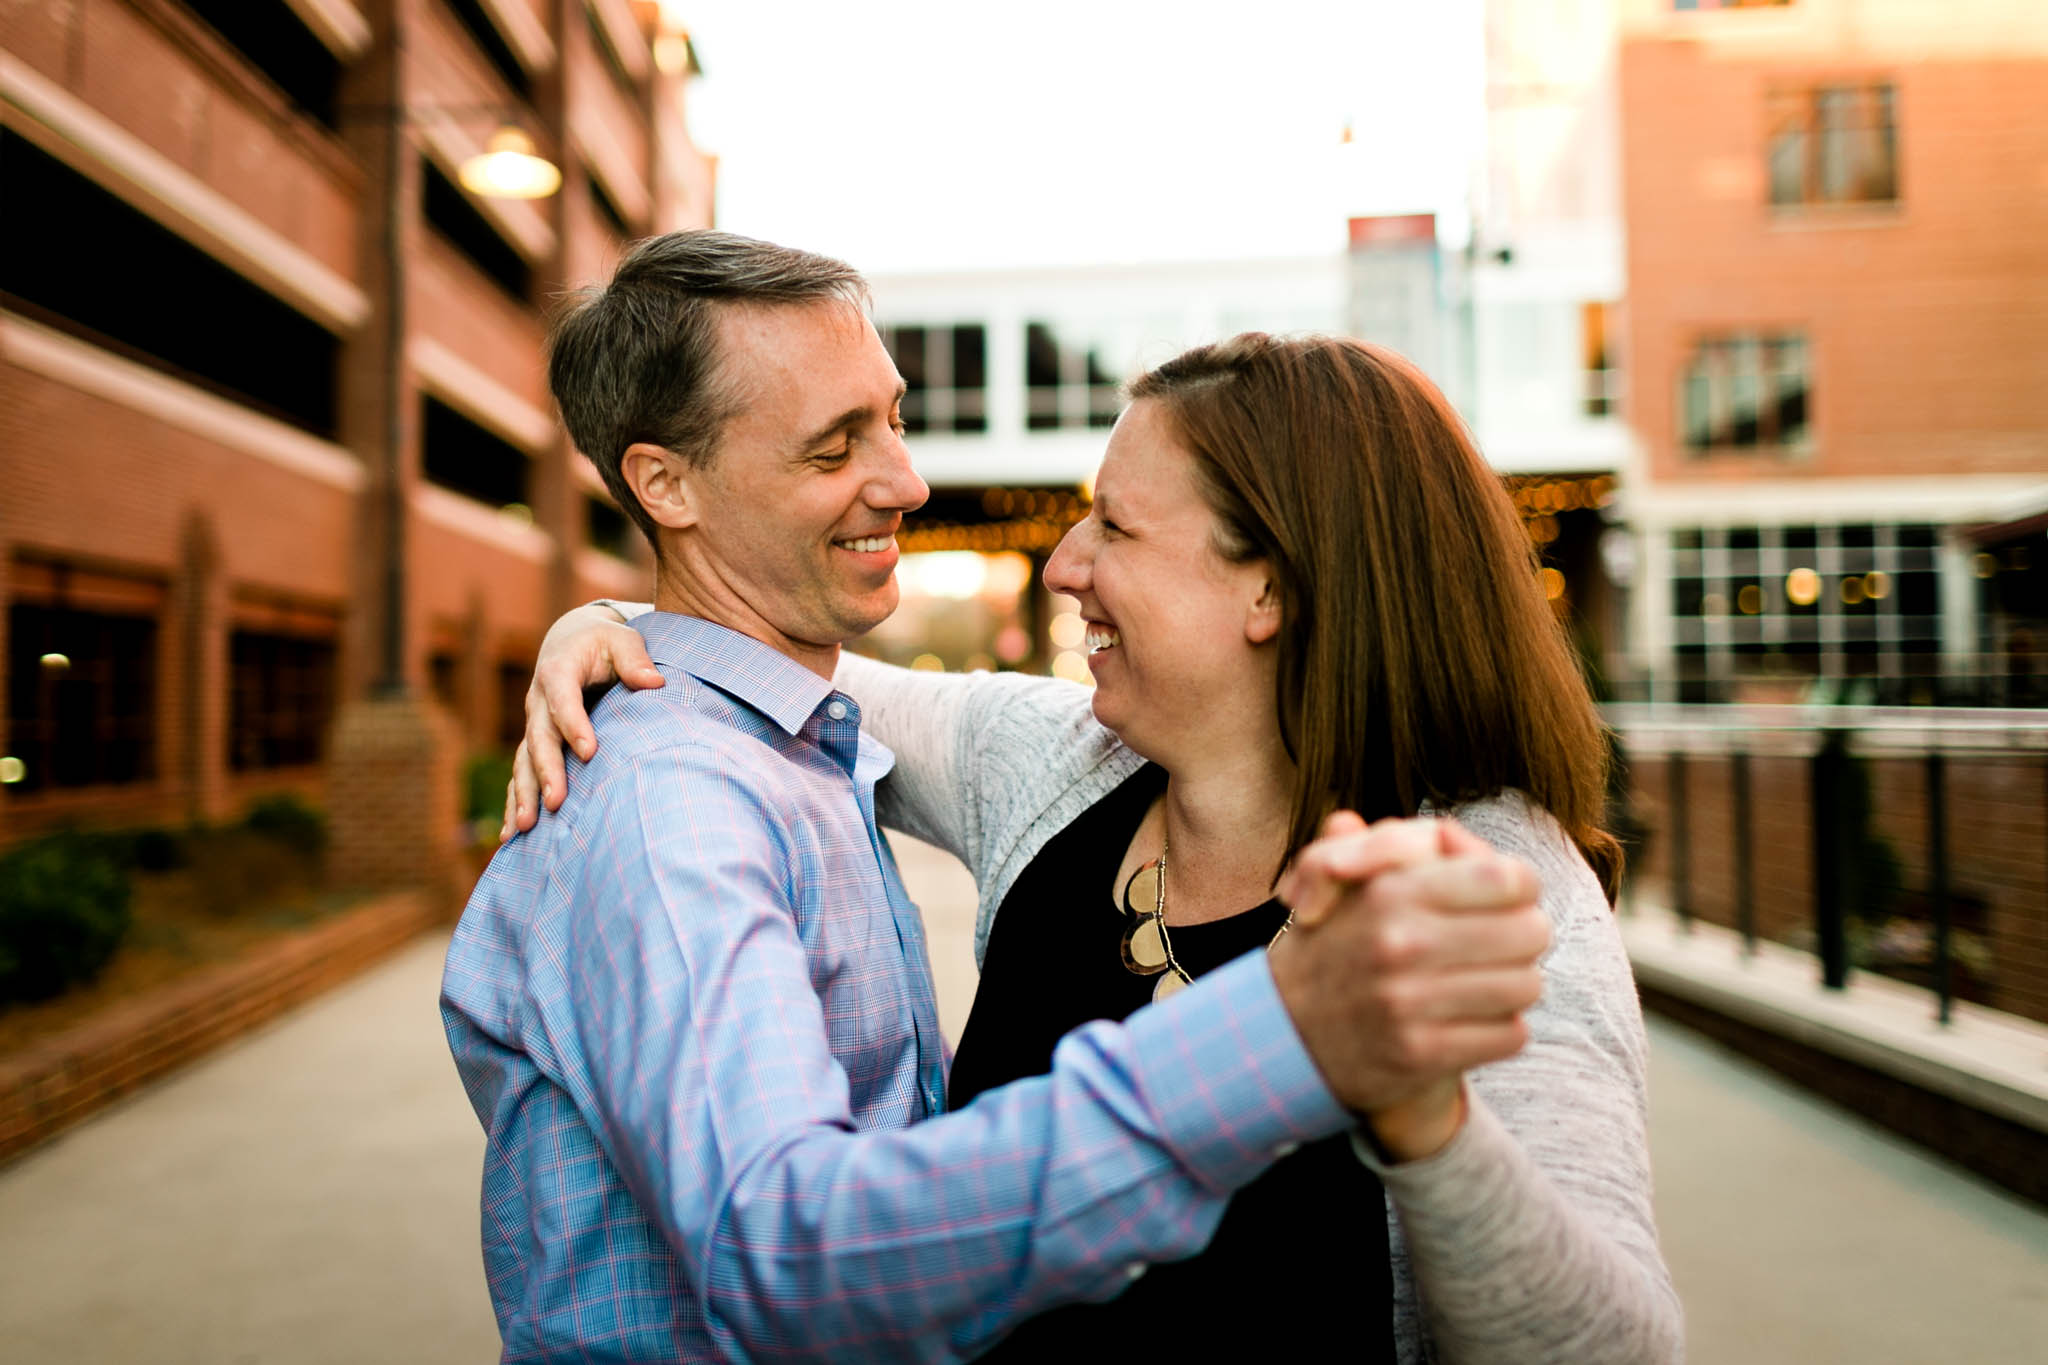 Durham Photographer | Couple laughing and dancing at American Tobacco Campus | By G. Lin Photography